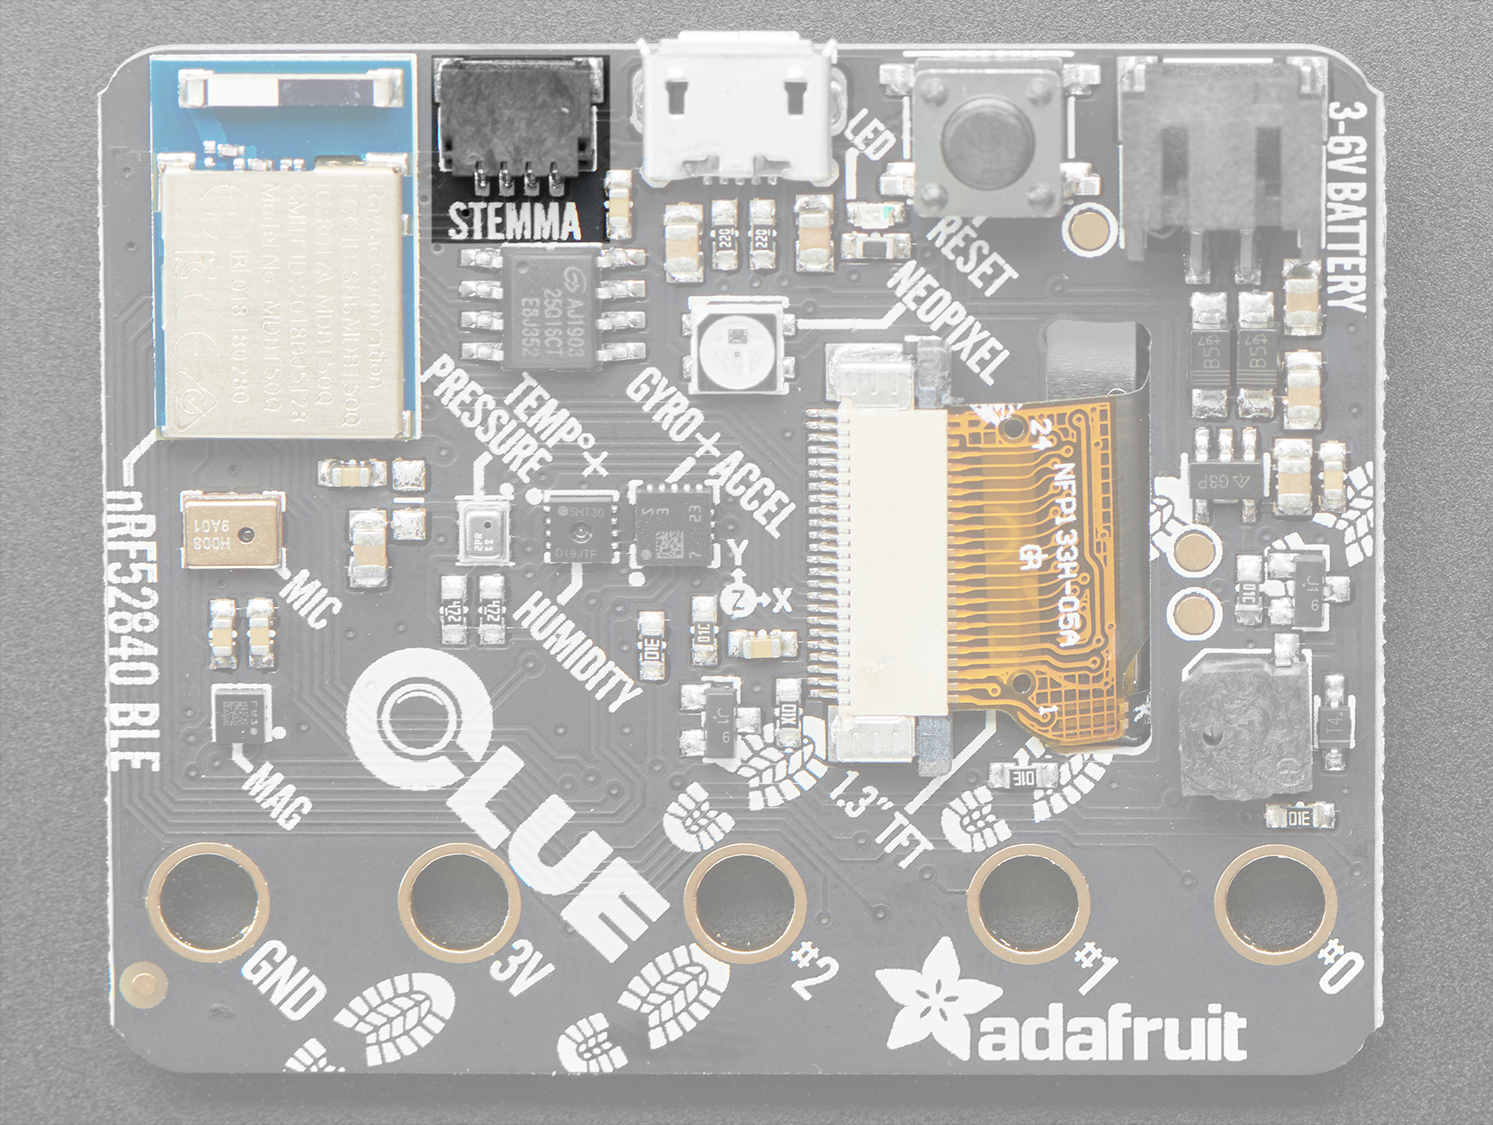 adafruit_products_Clue_pinouts_STEMMA_connector.png